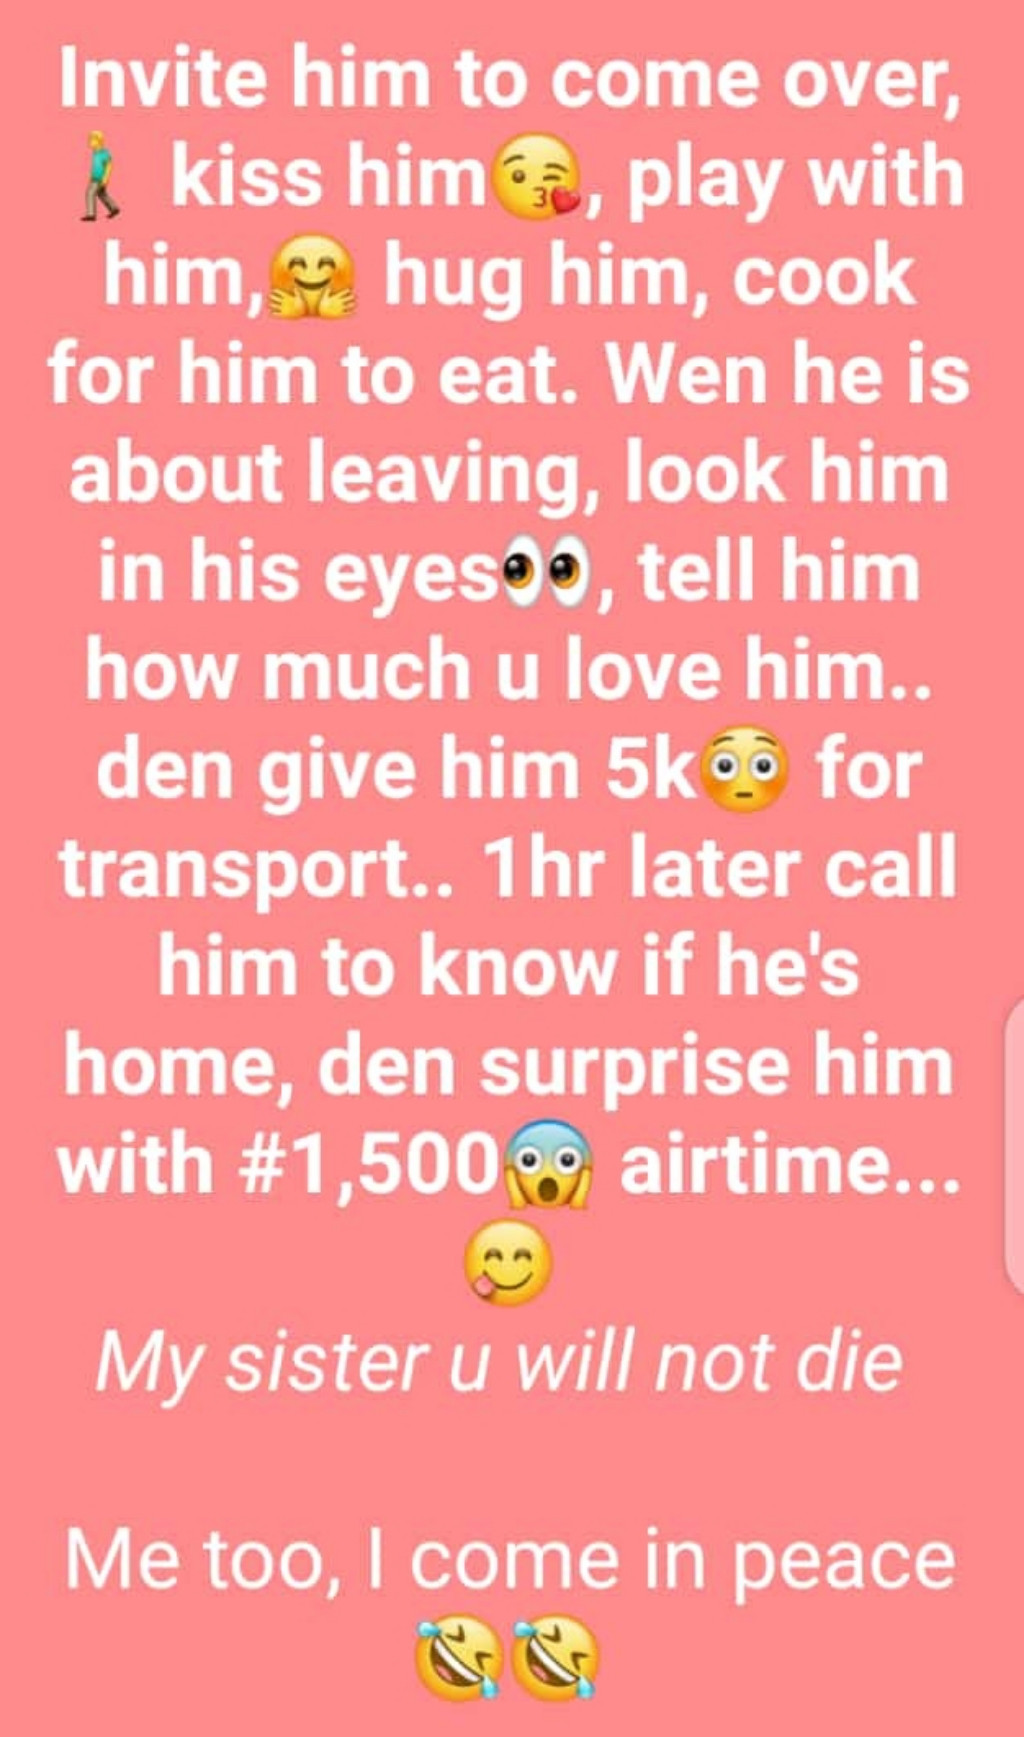 Make him feel special biko,  caring shouldn't be from the guy alone